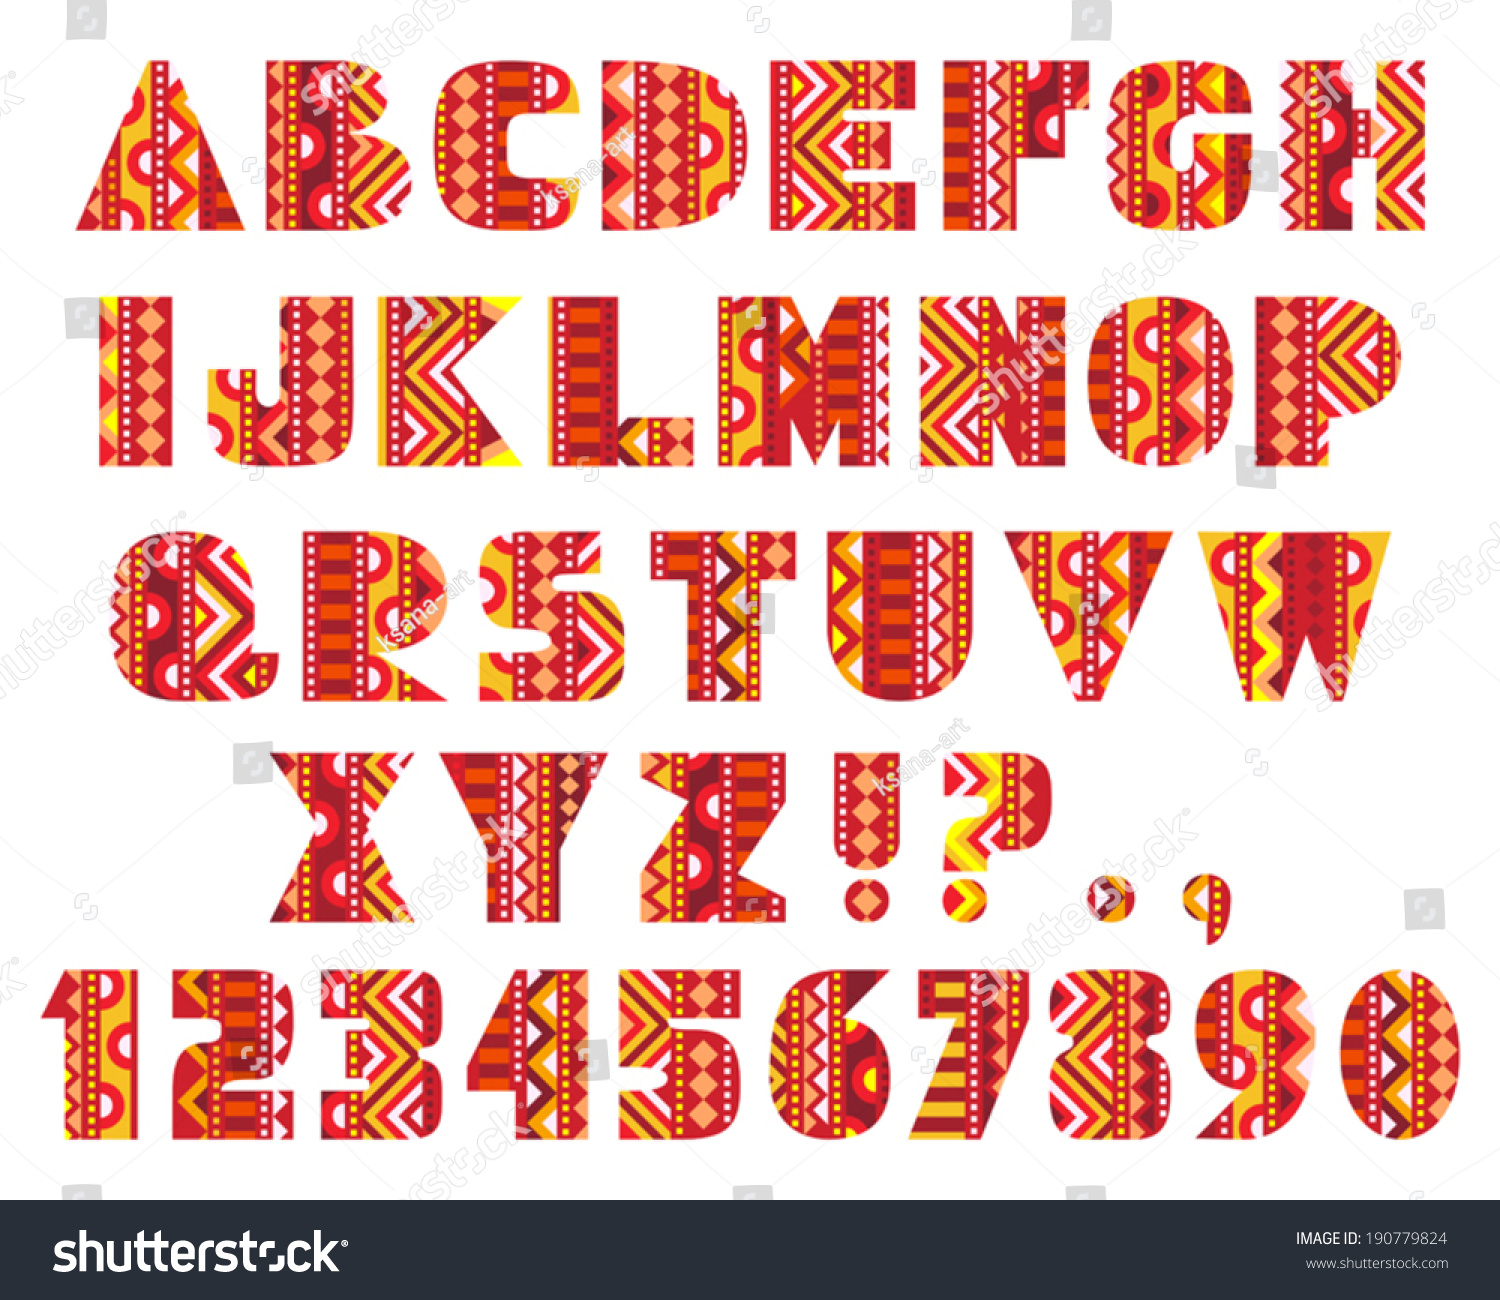 Decorative Letters Decorative Letters Set Abc Letters Abstract Stock Vector 190779824